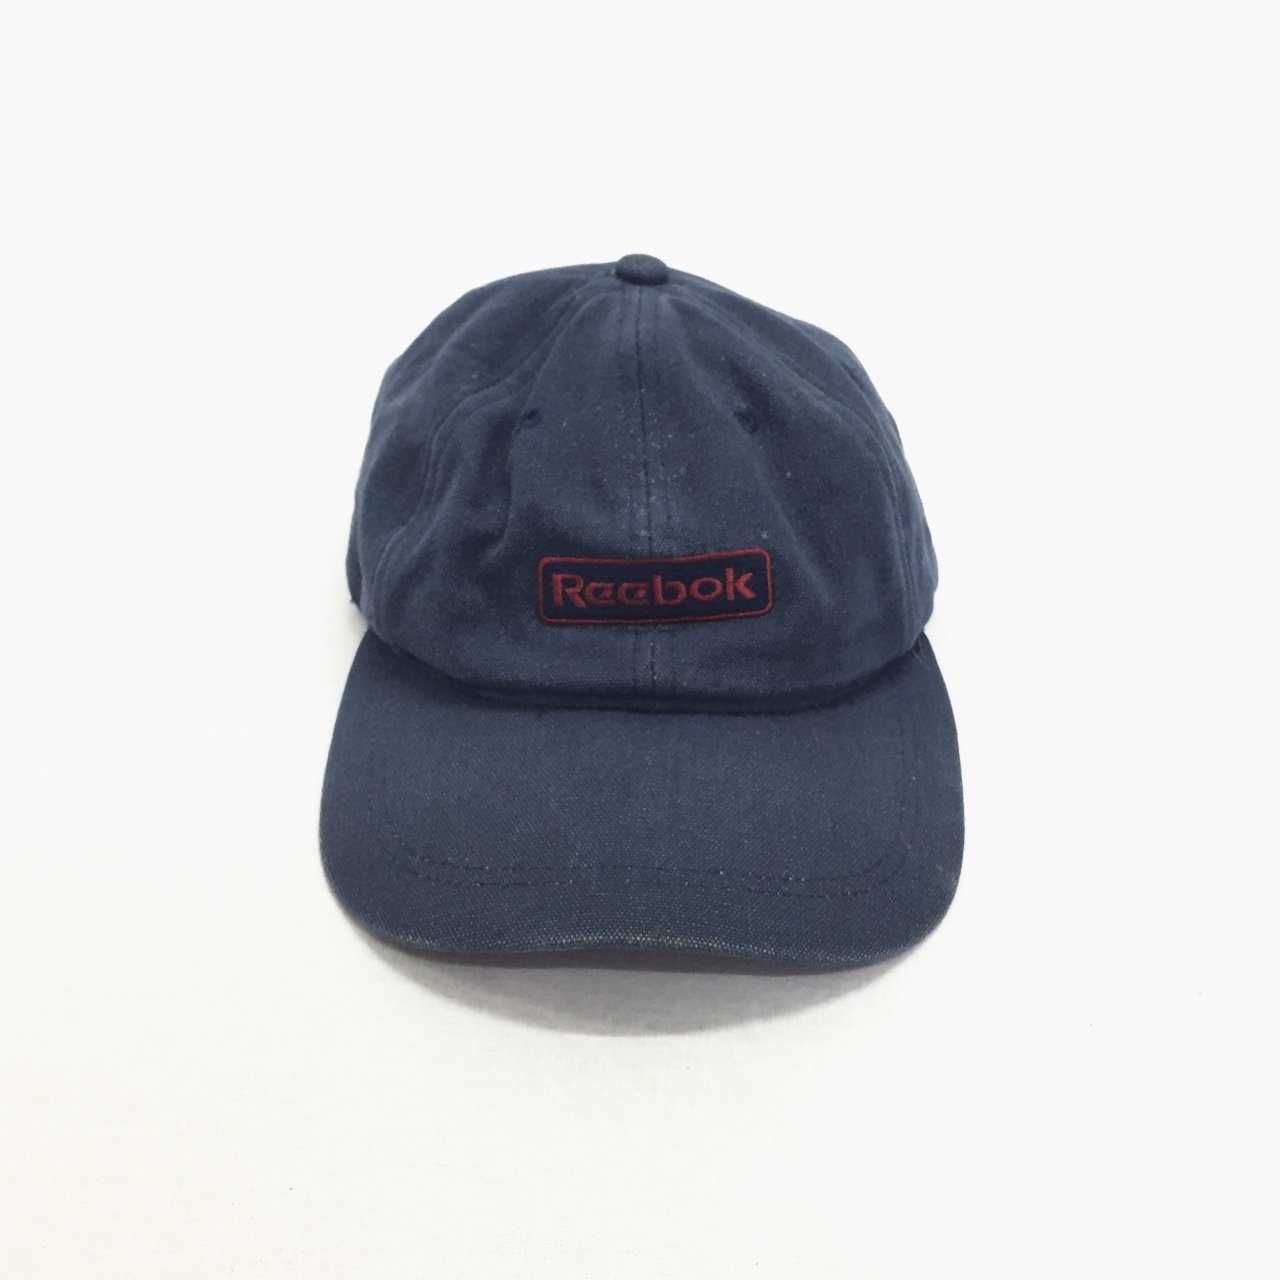 Vintage Reebok cap - navy blue men s hat urban outfitters - Depop 2795af4cd74